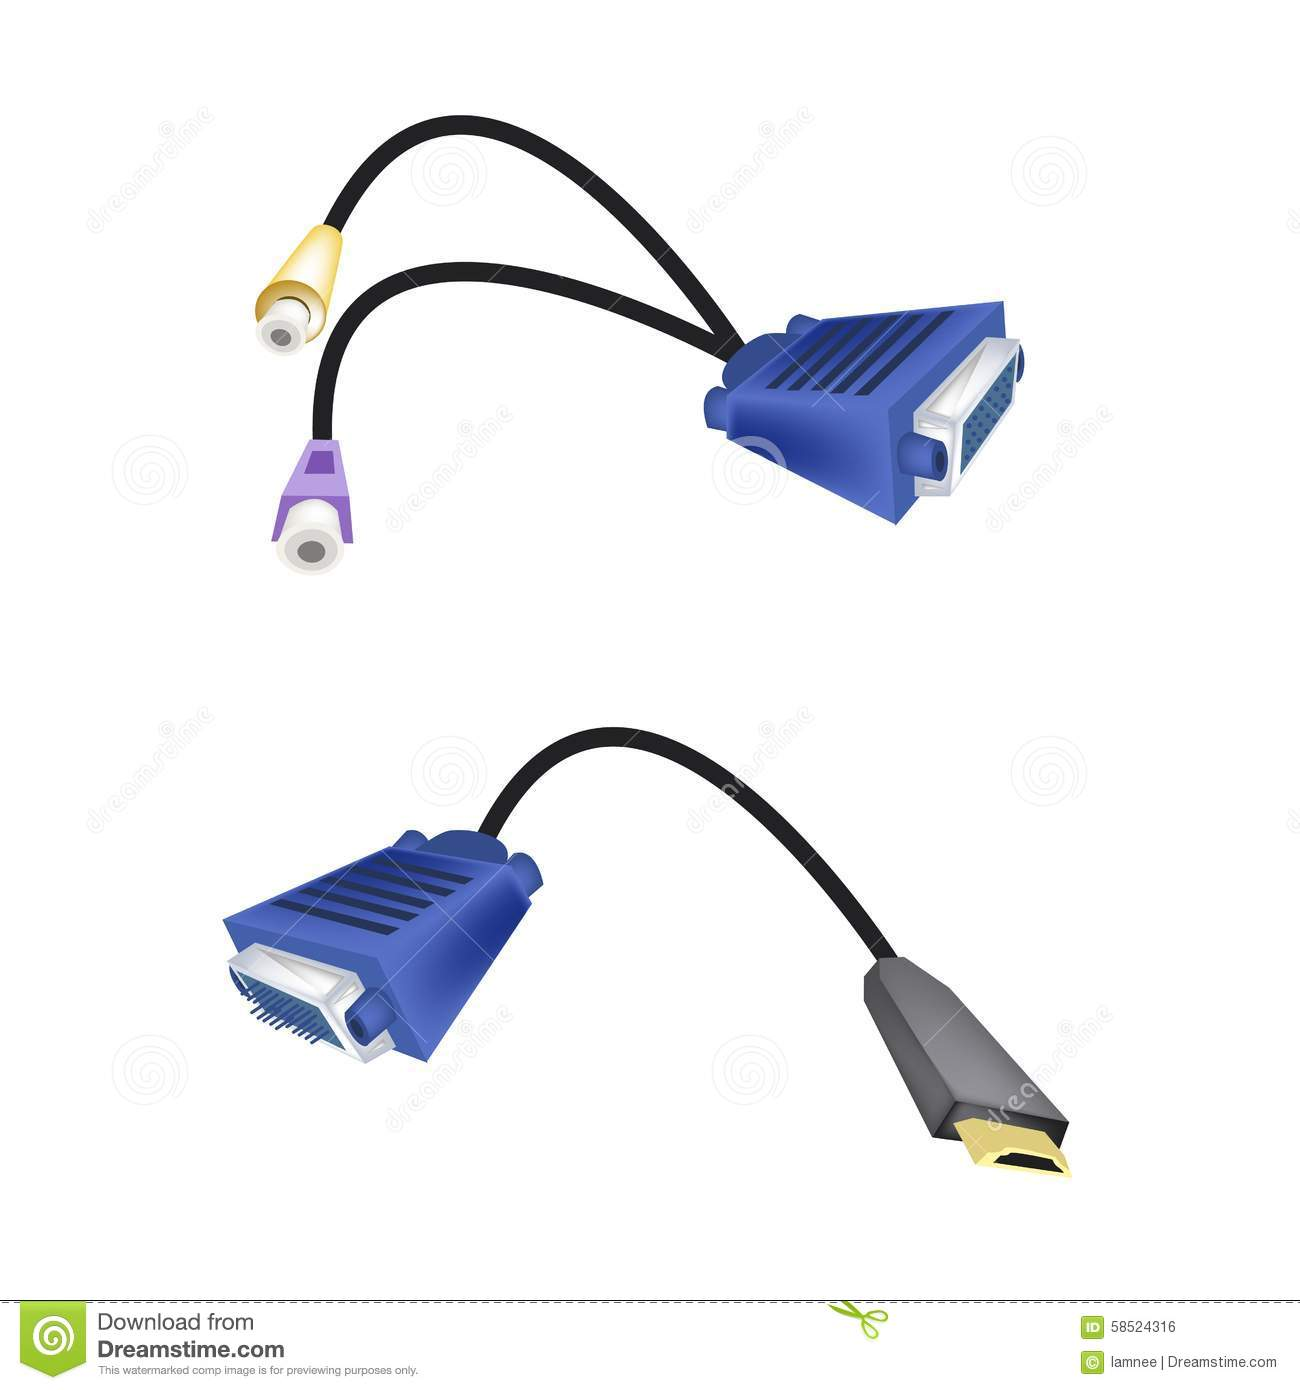 hight resolution of dvi digital video interface or vga to rca cables